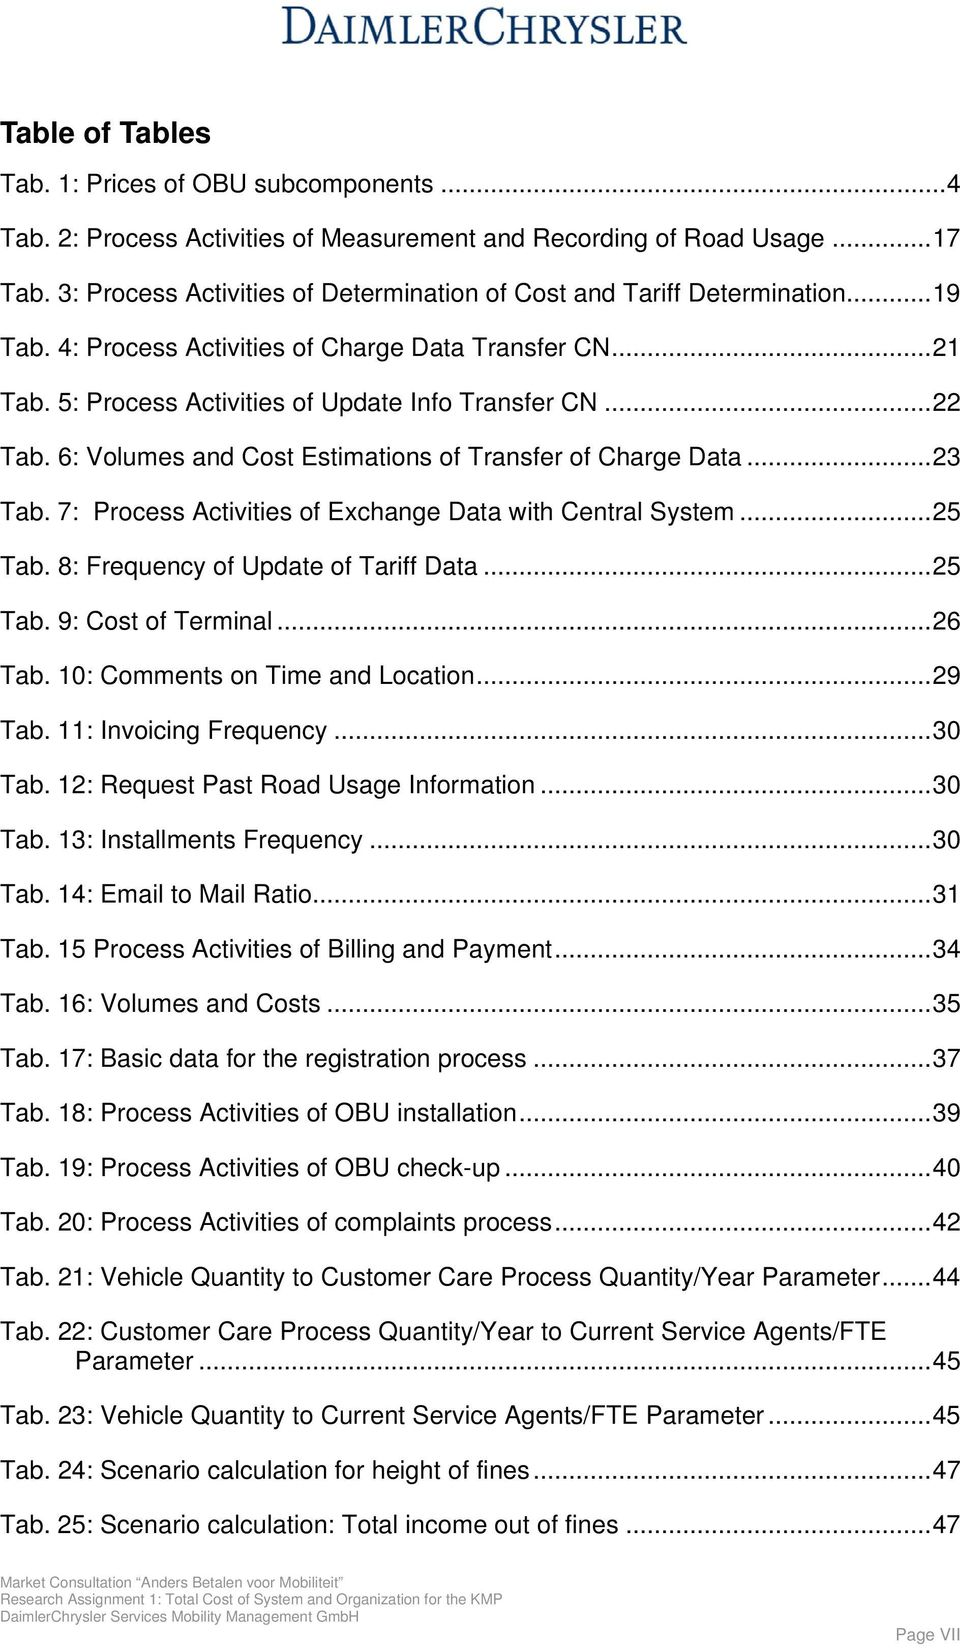 6: Volumes and Cost Estimations of Transfer of Charge Data...23 Tab. 7: Process Activities of Exchange Data with Central System...25 Tab. 8: Frequency of Update of Tariff Data...25 Tab. 9: Cost of Terminal.